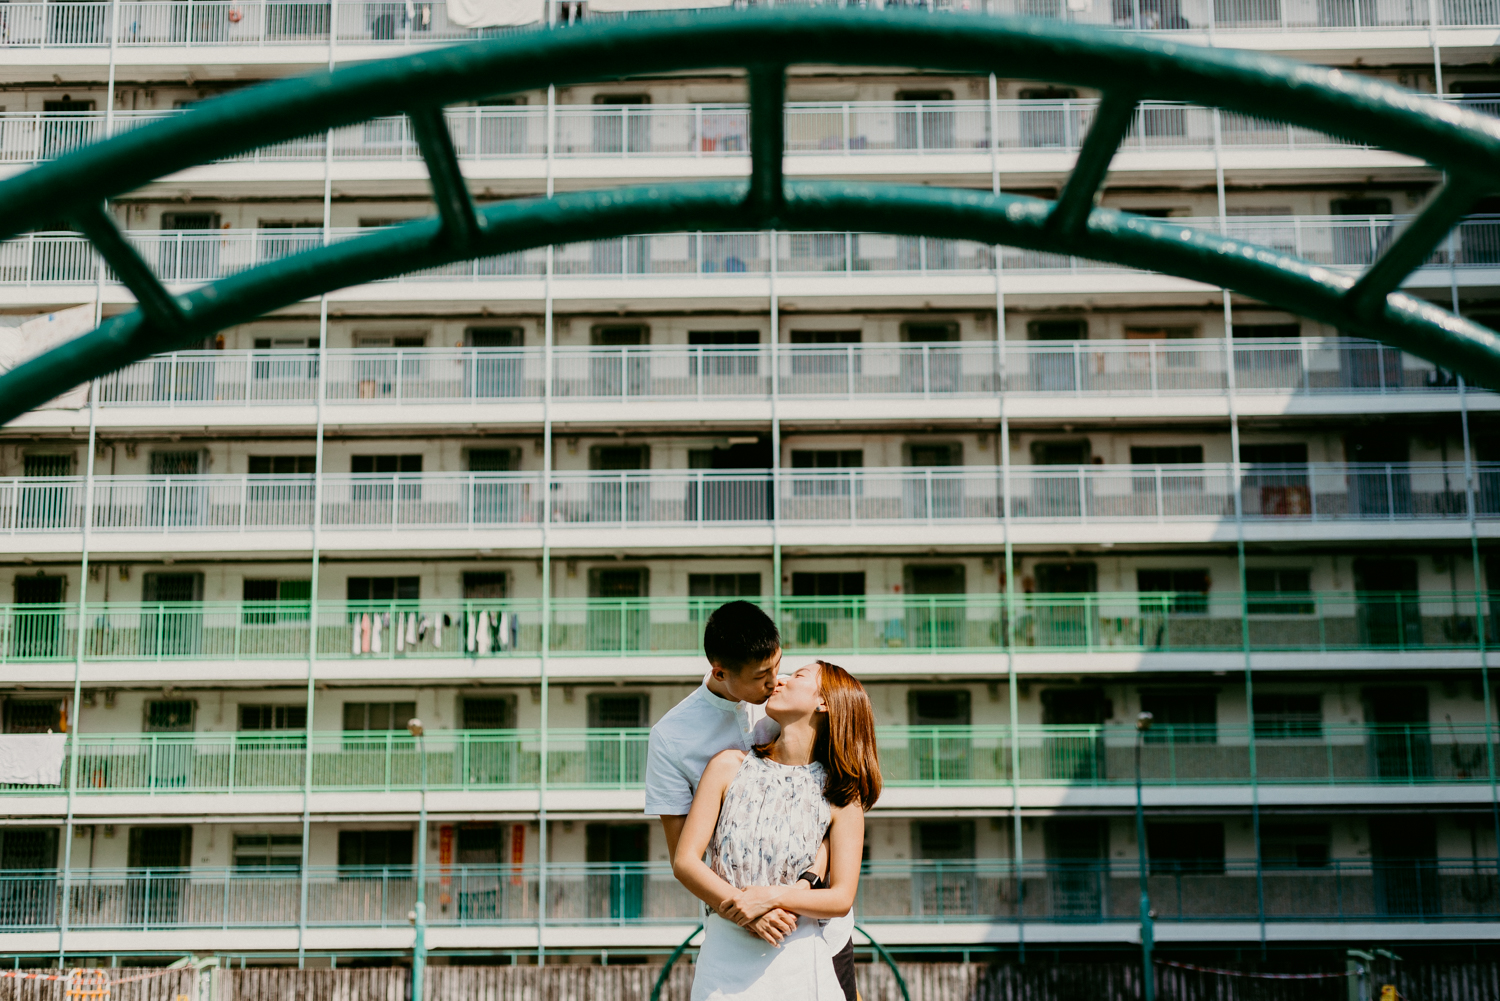 Hong_Kong_Kowloon_Destination_Engagement_Shoot-30.JPG